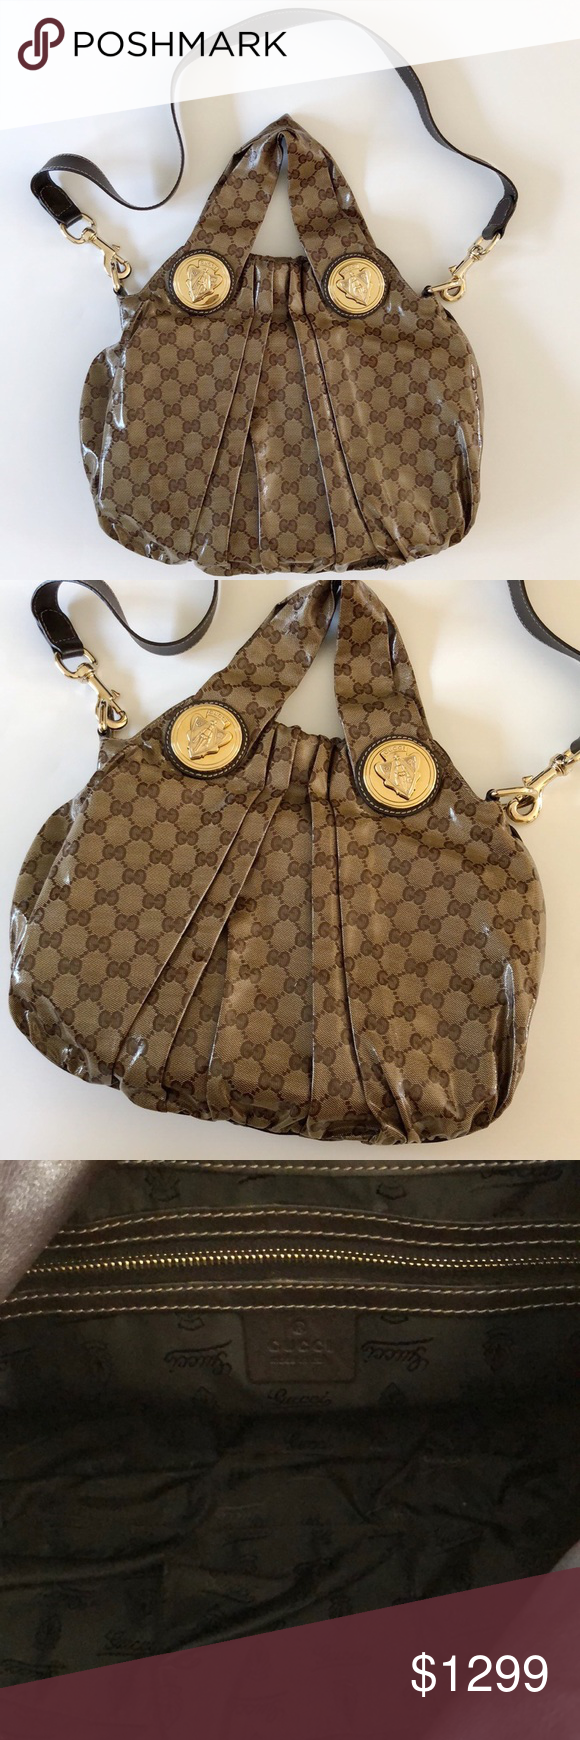 75e80877af9 Gucci Hysteria (Small) Covered canvas with Gucci monogram. Inner ...